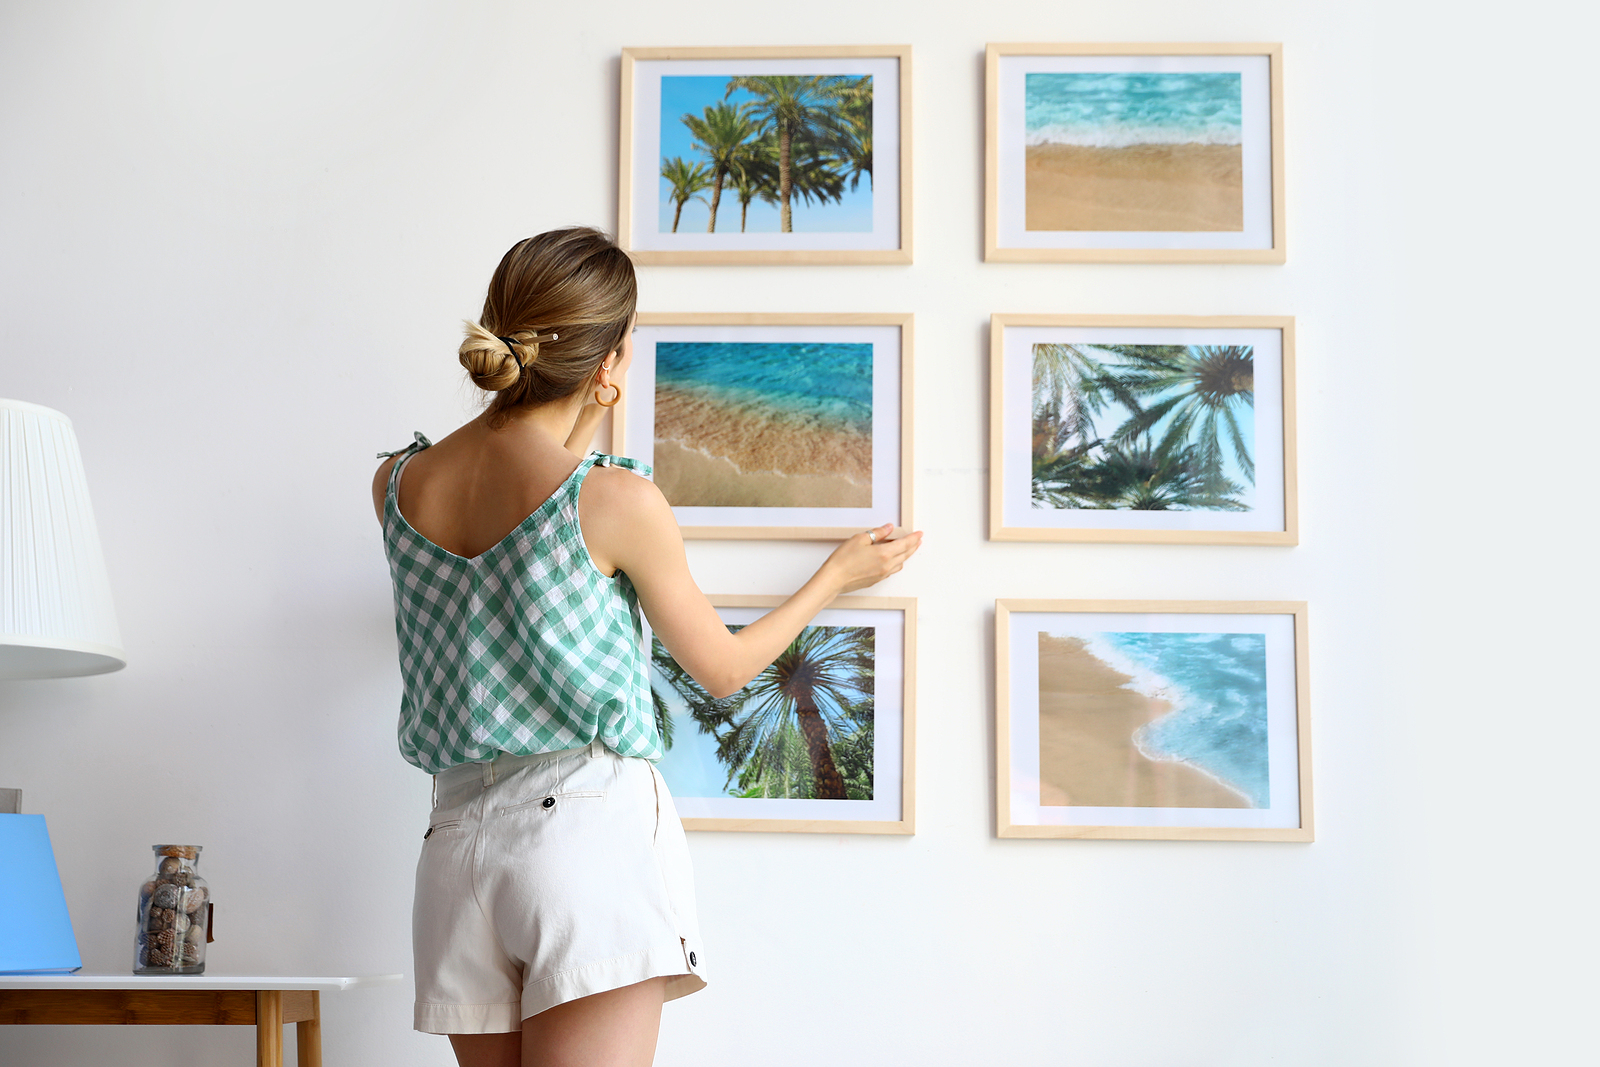 Professional Fine Art Services for the Safety of Your Collection